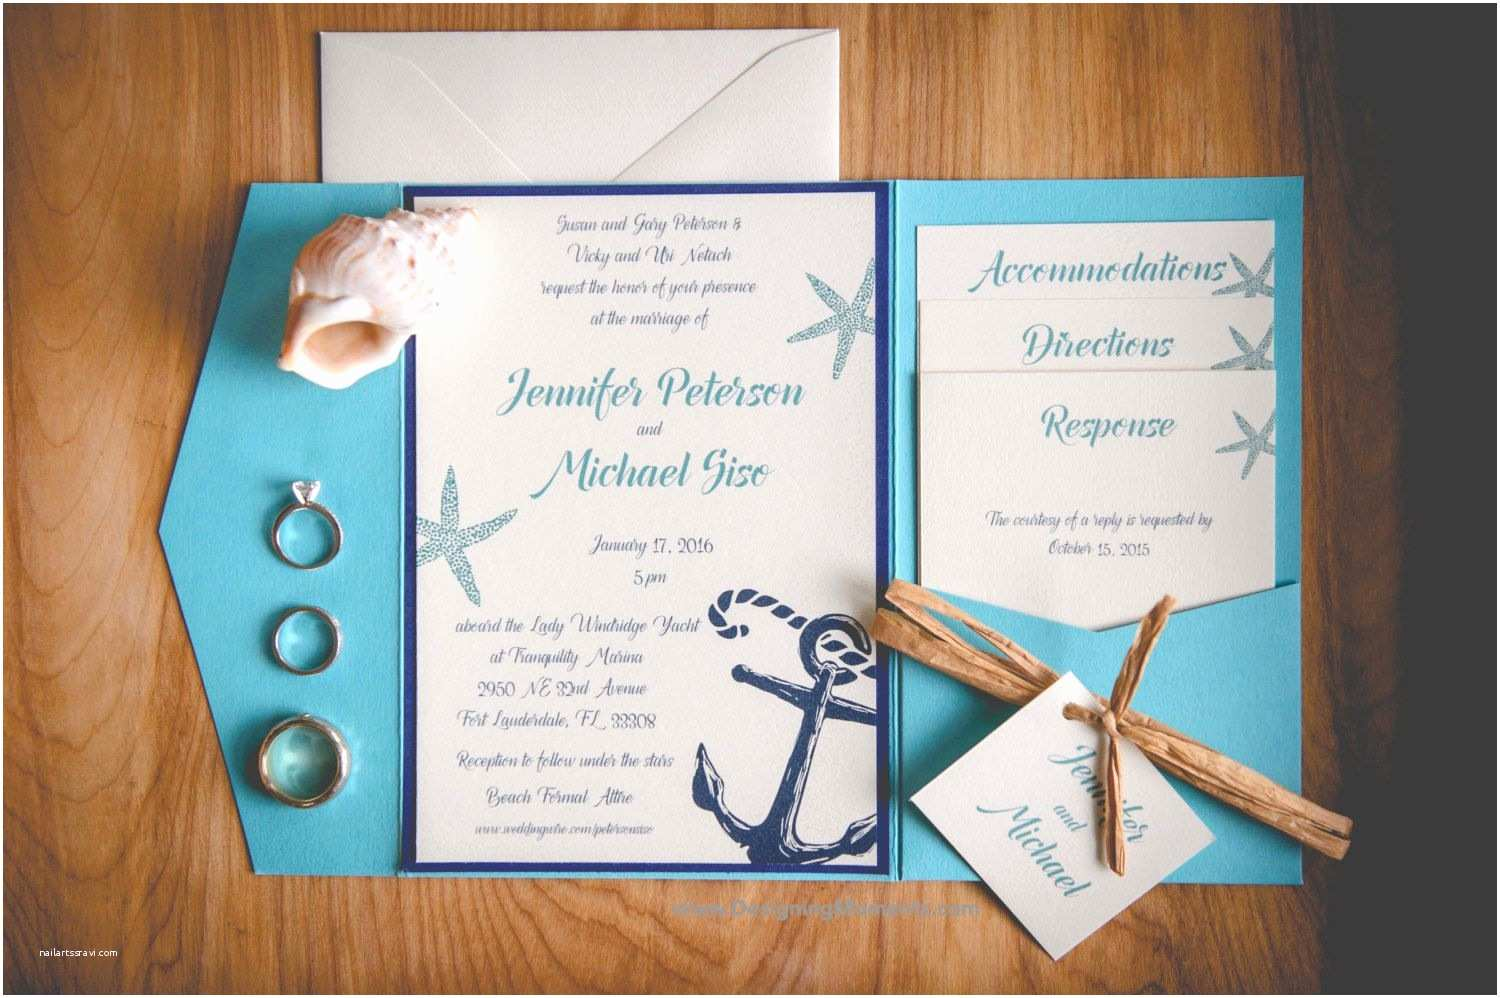 Wedding Reception Invitations Invitation Card Beach themed Wedding Invitation Invite